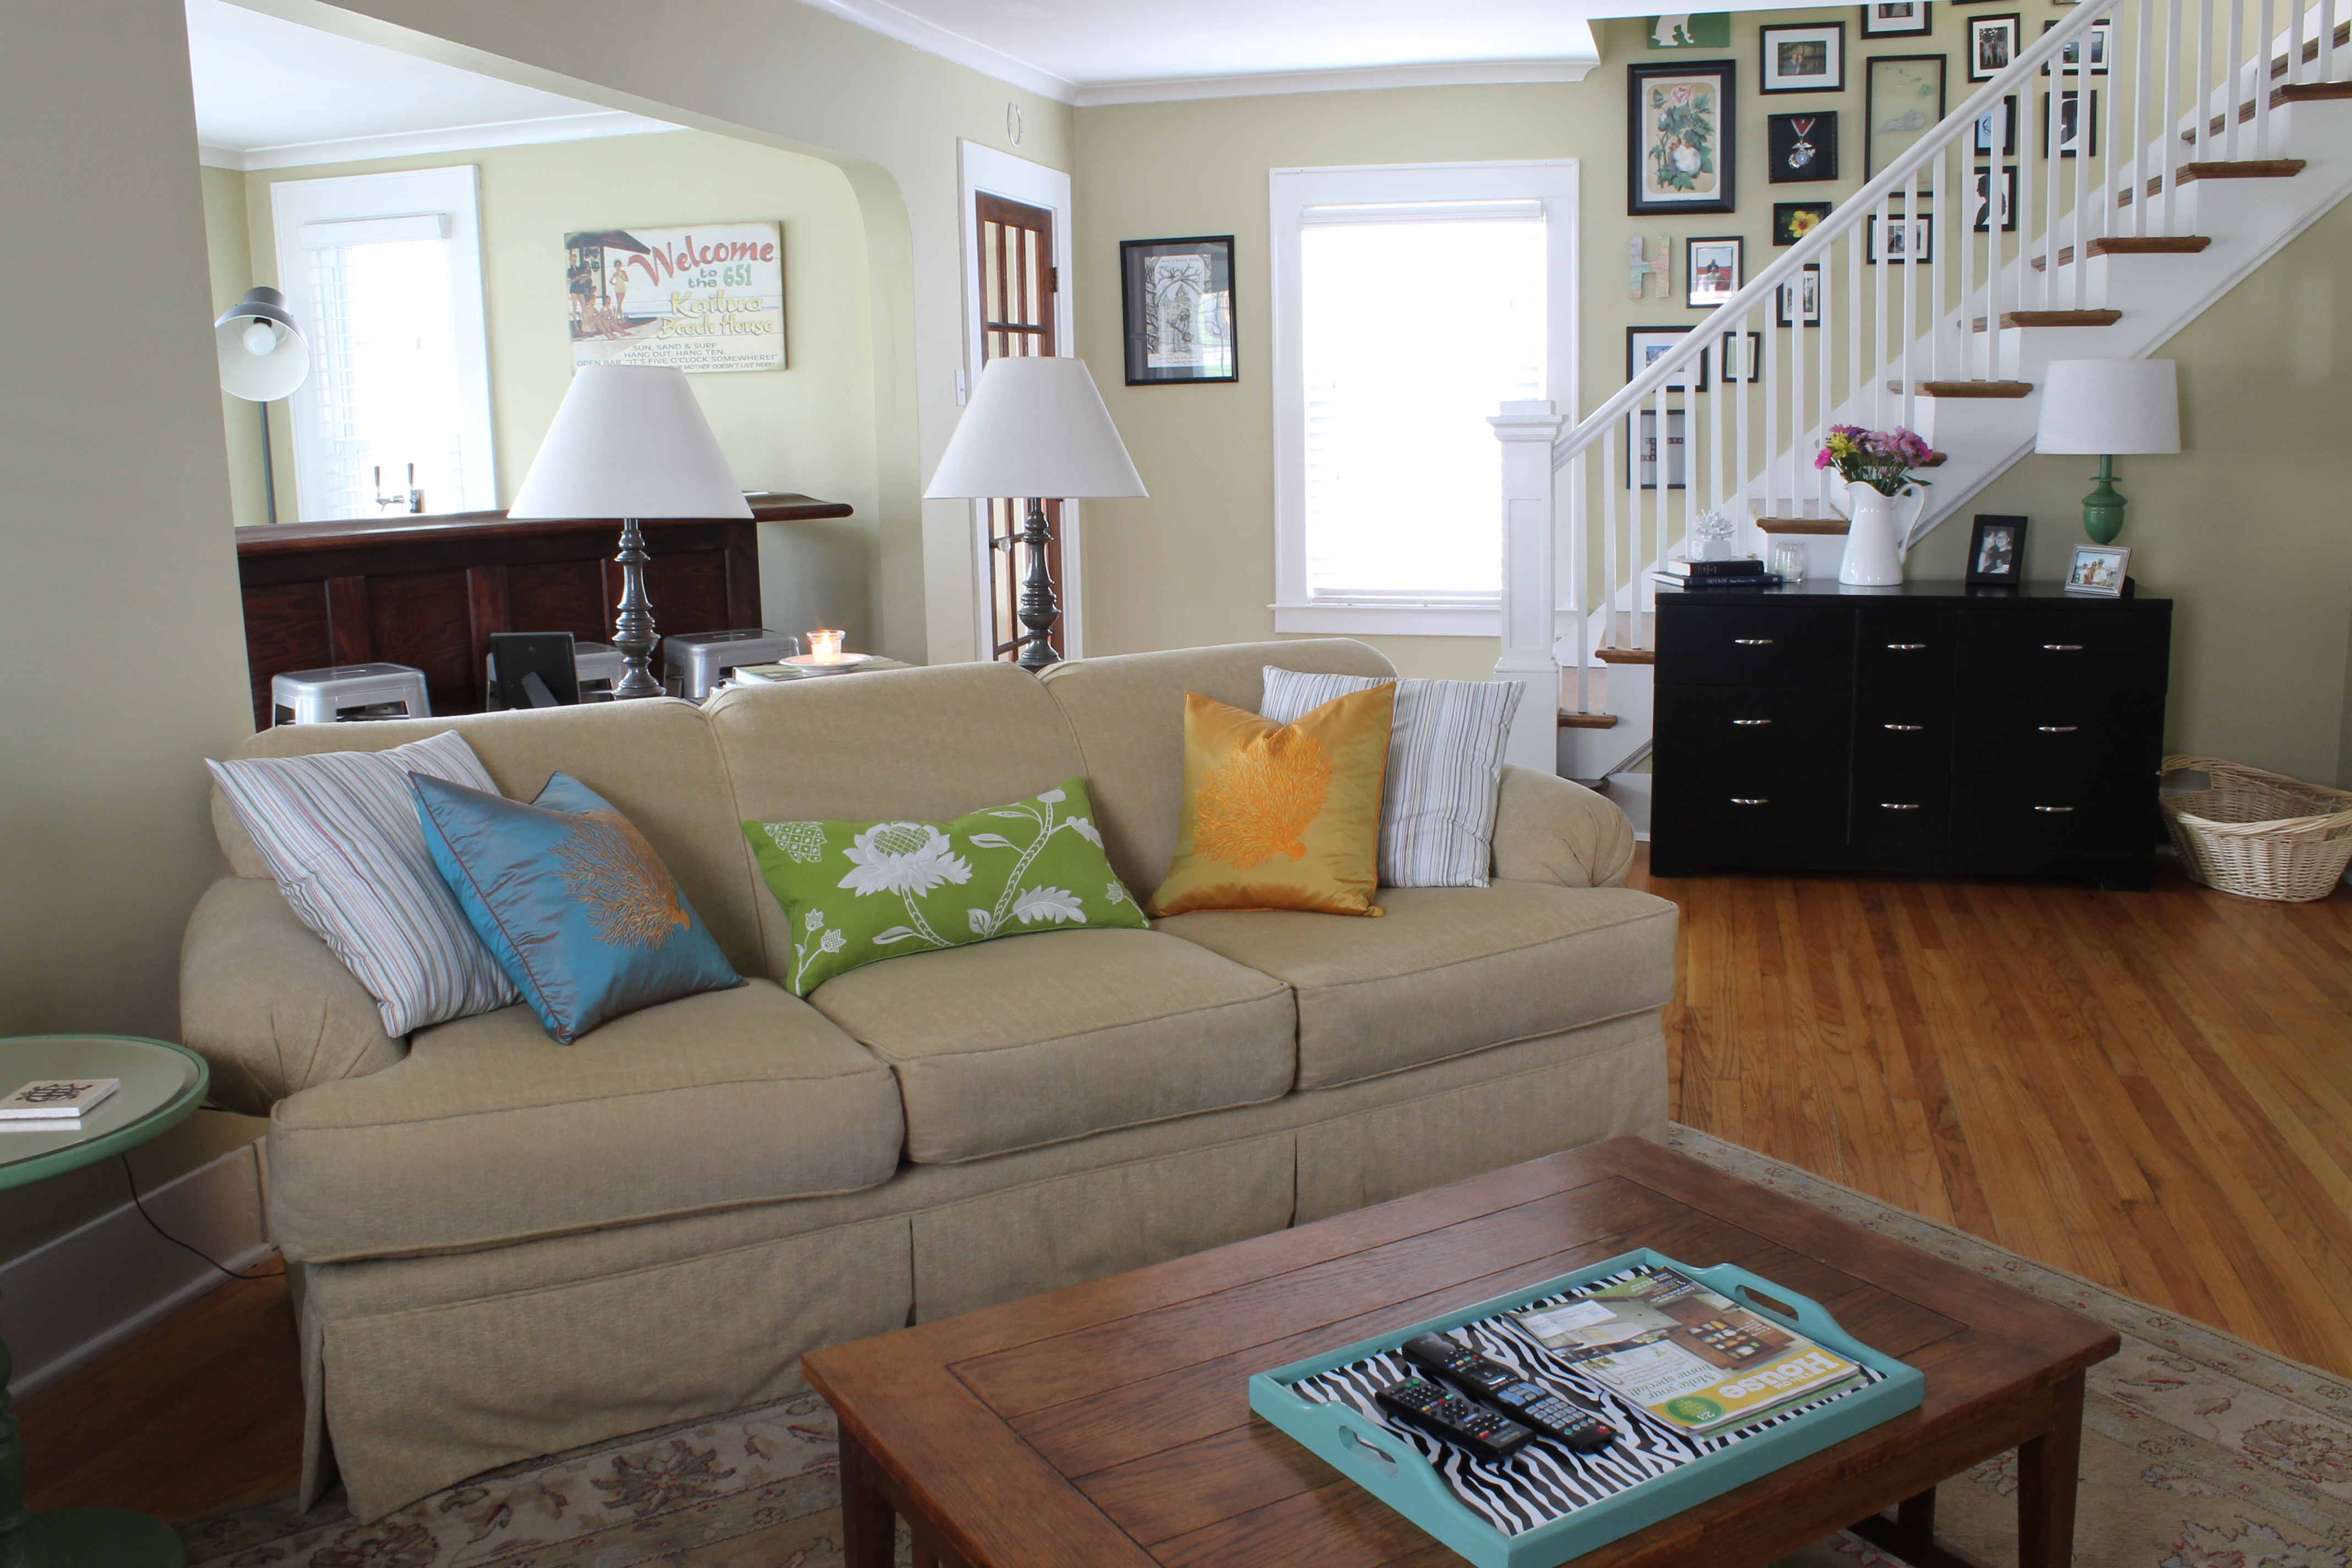 Blog all living room - Visual Tricks to Enlarge a Small Space